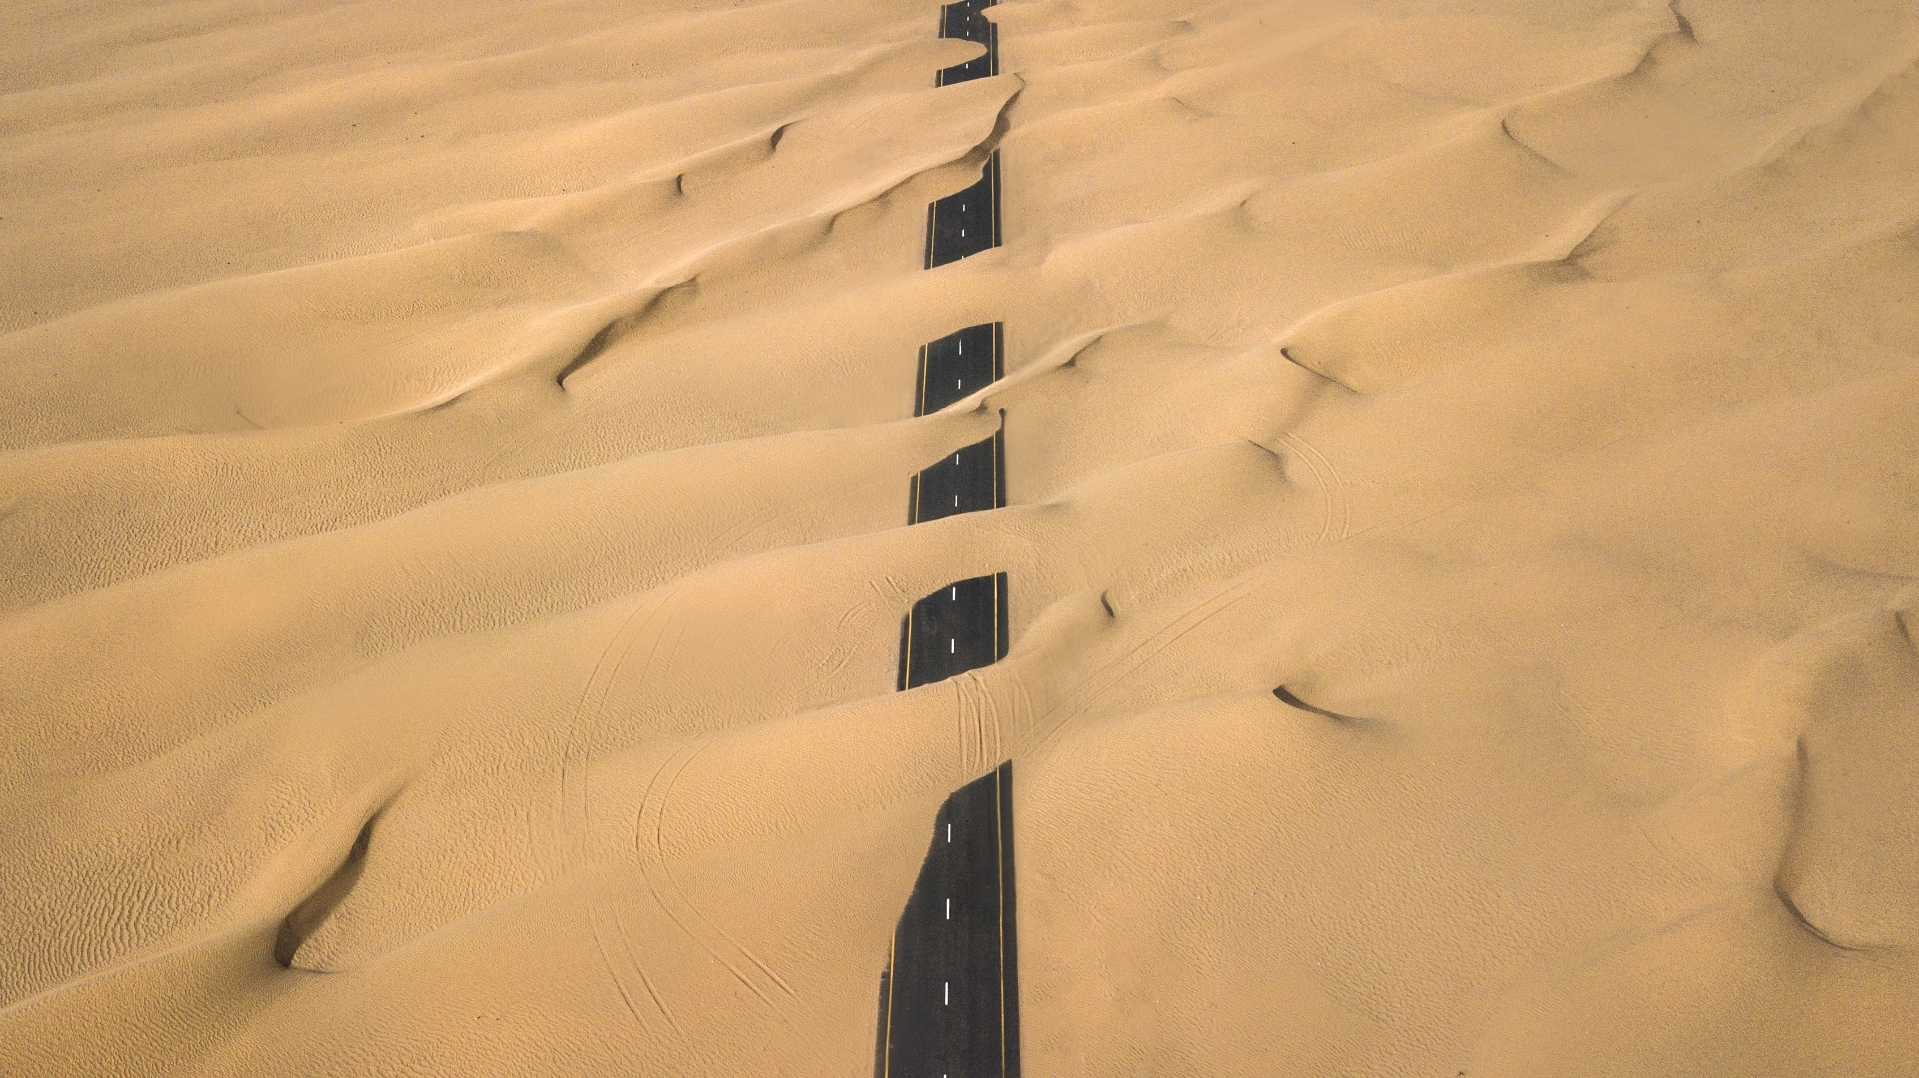 #Roadcovered with  #sand